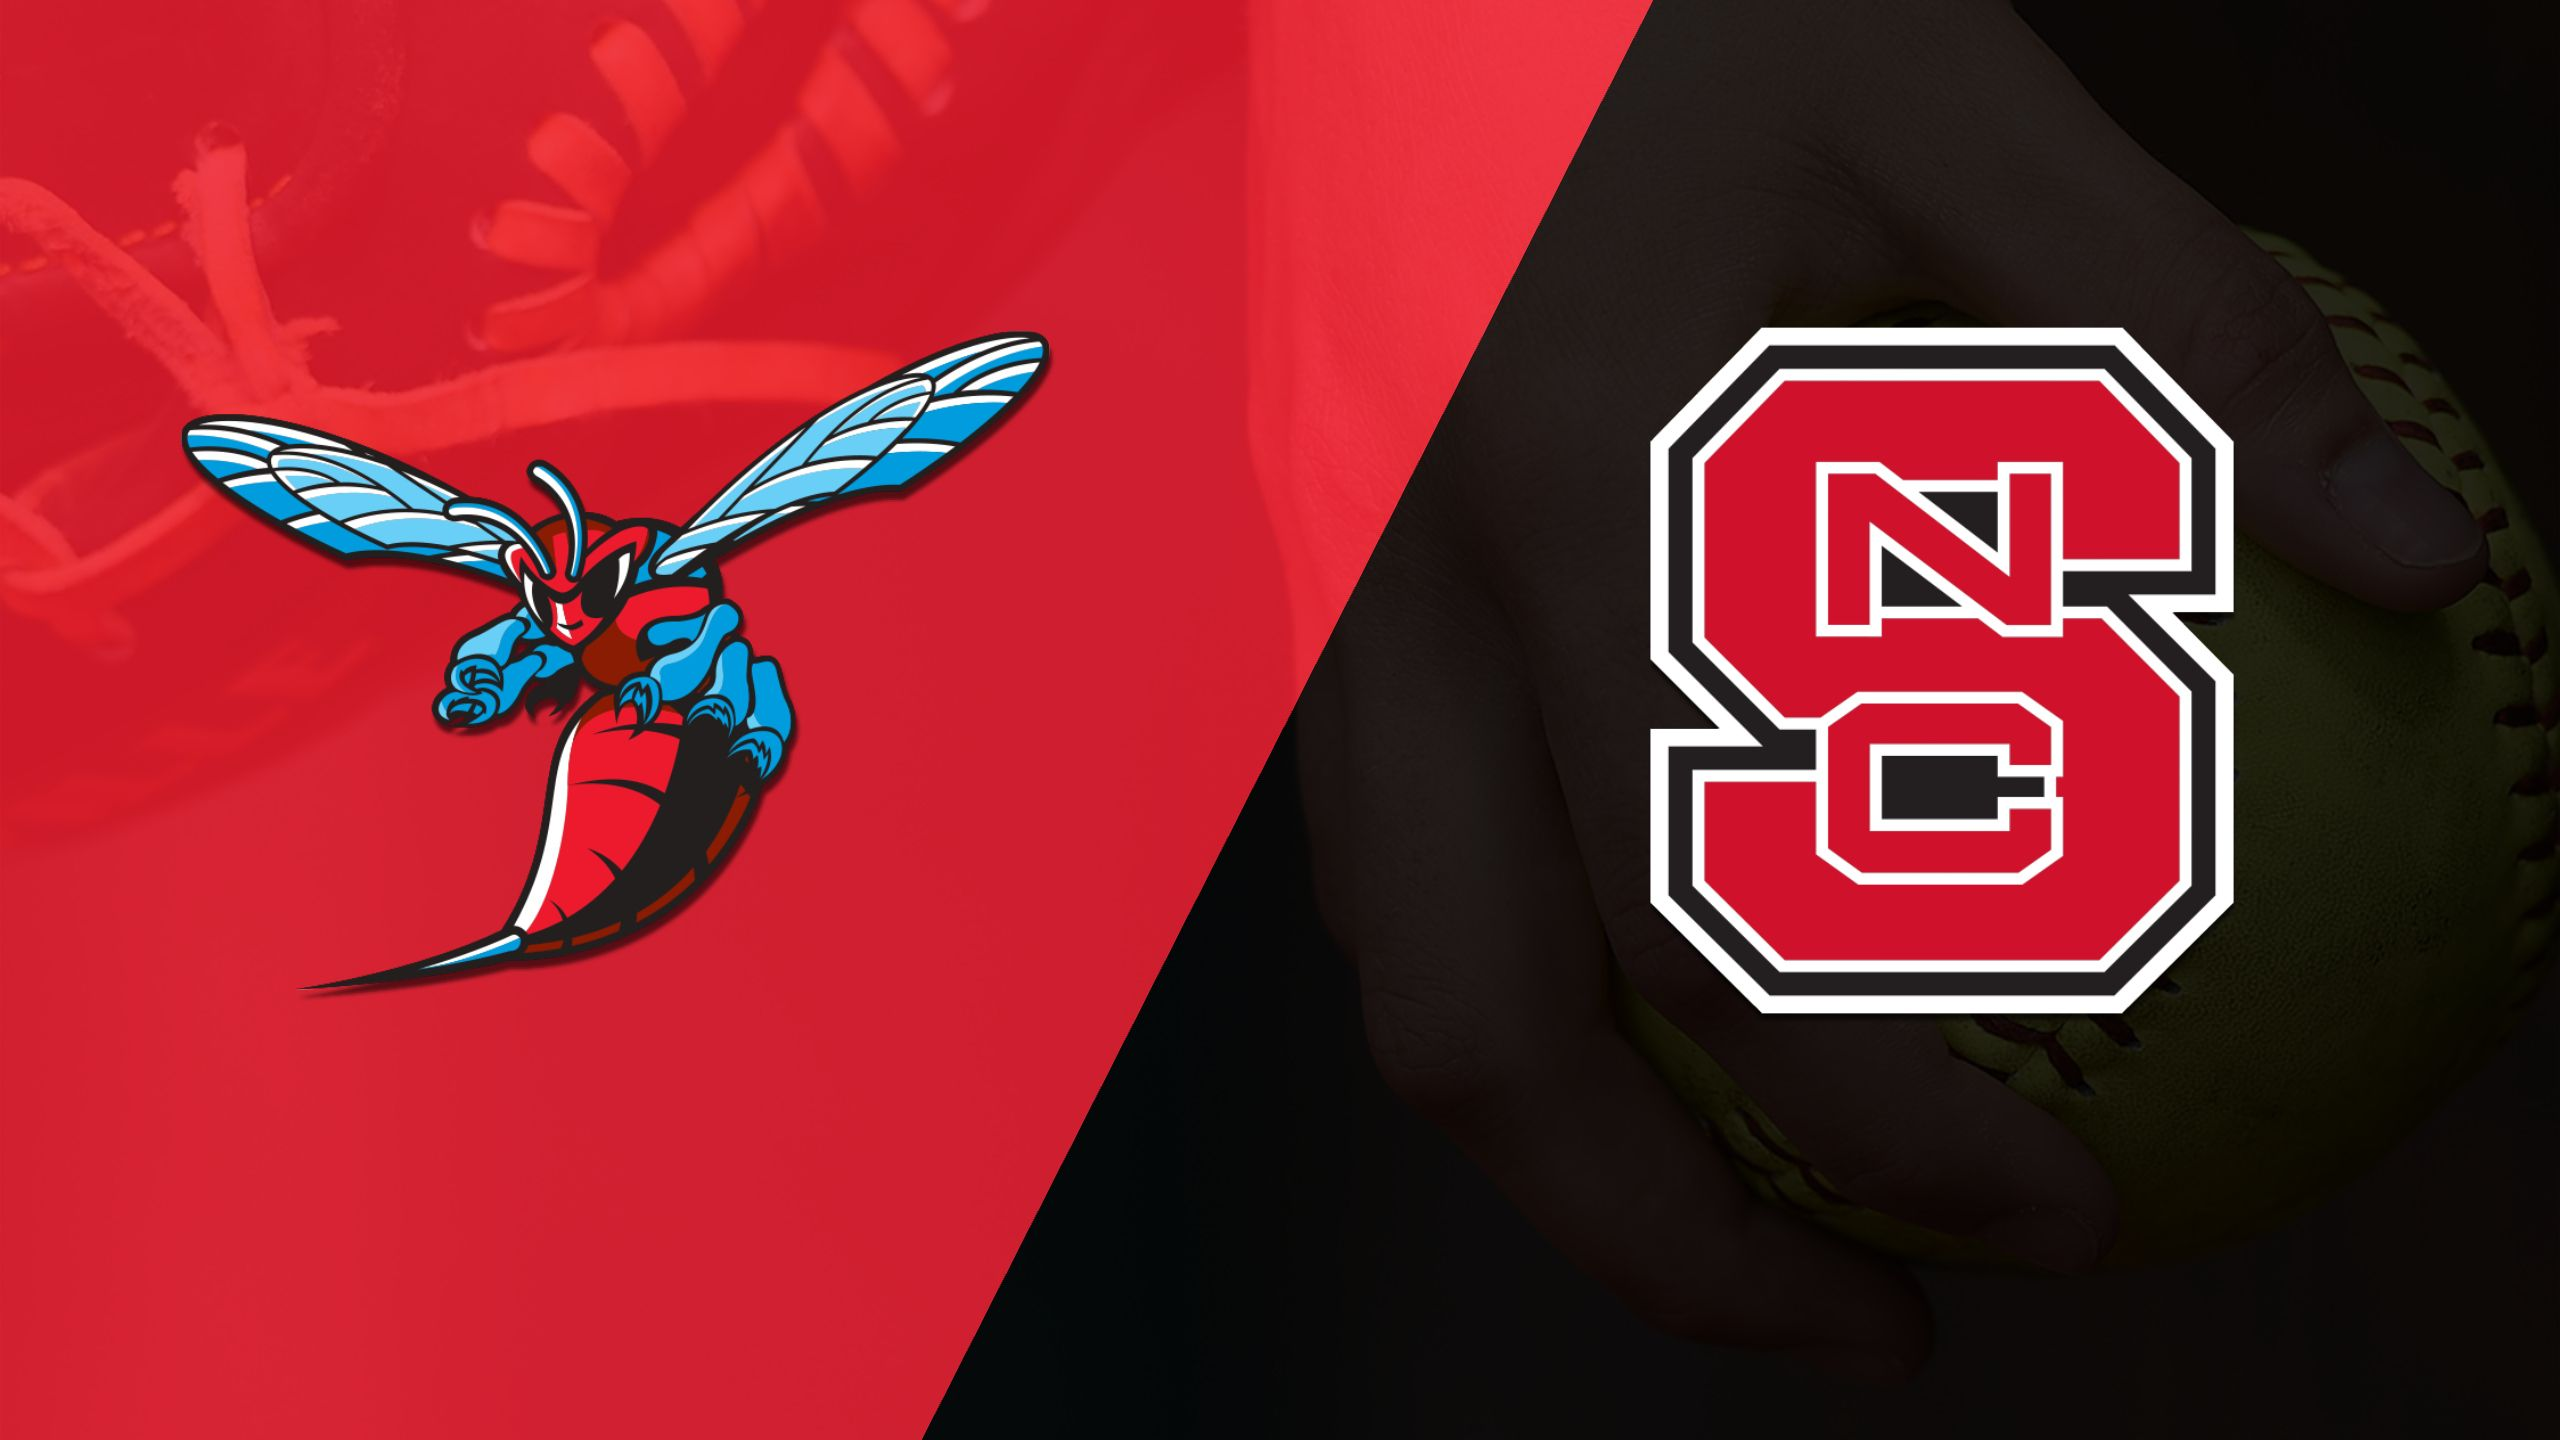 Delaware State vs. NC State (Softball)